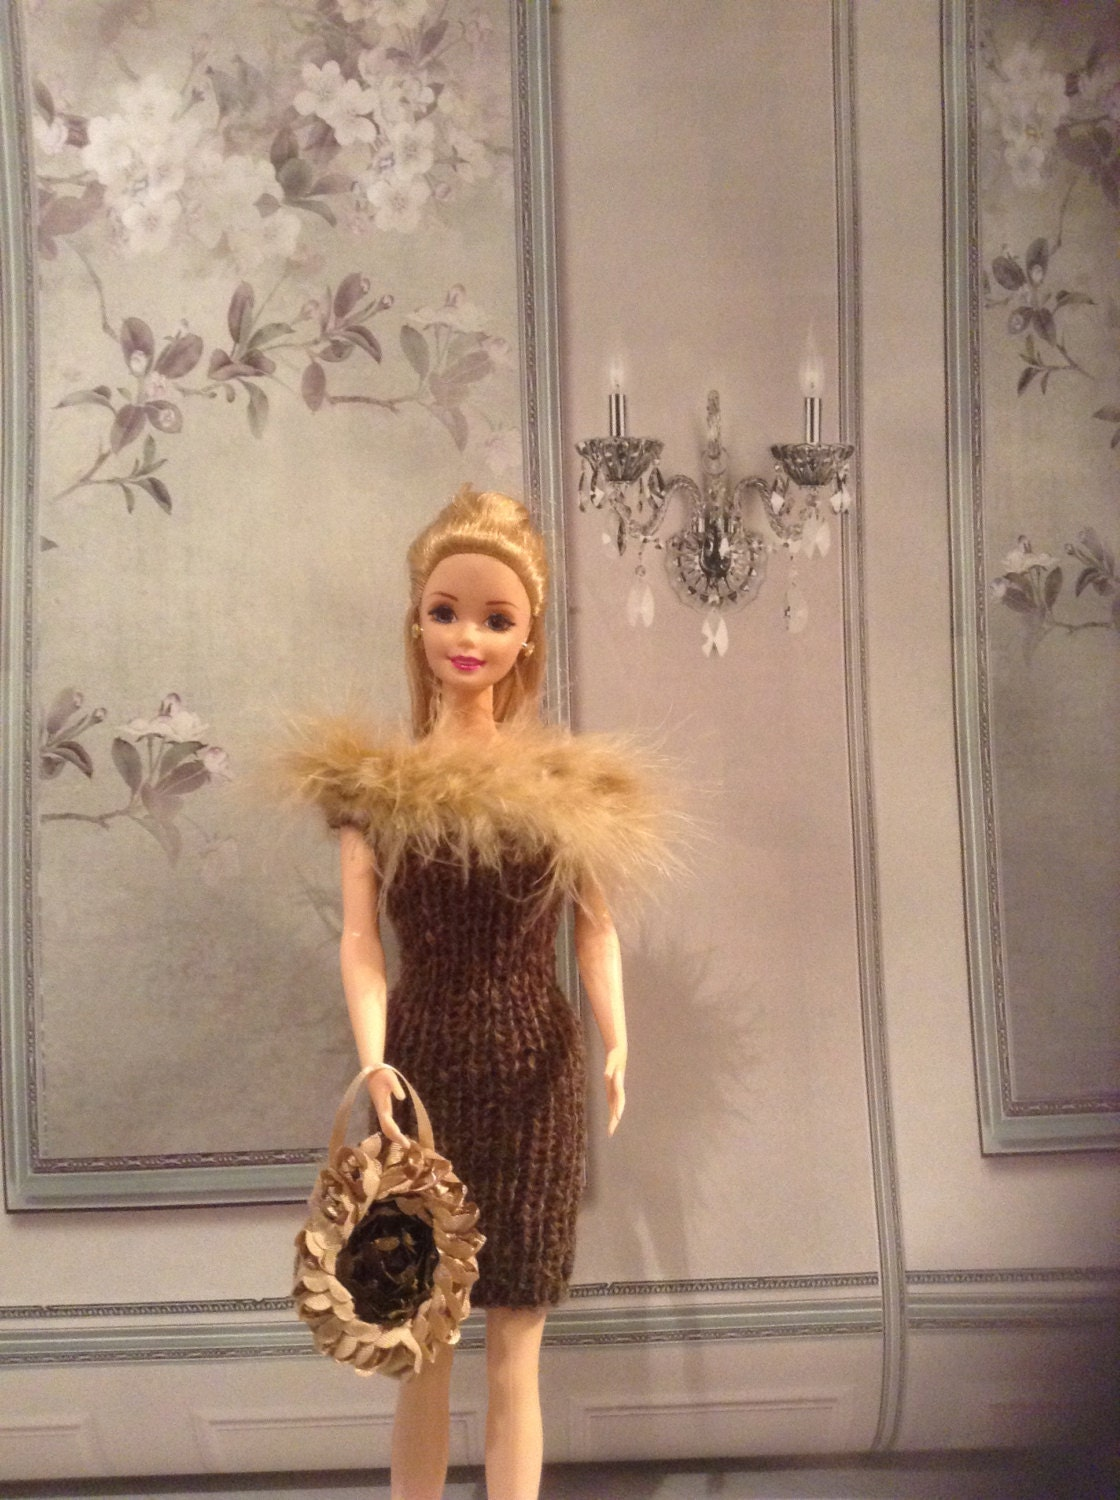 Handmade knitted dress with marabou detail and handbag to match ideal for Barbie or Sindy